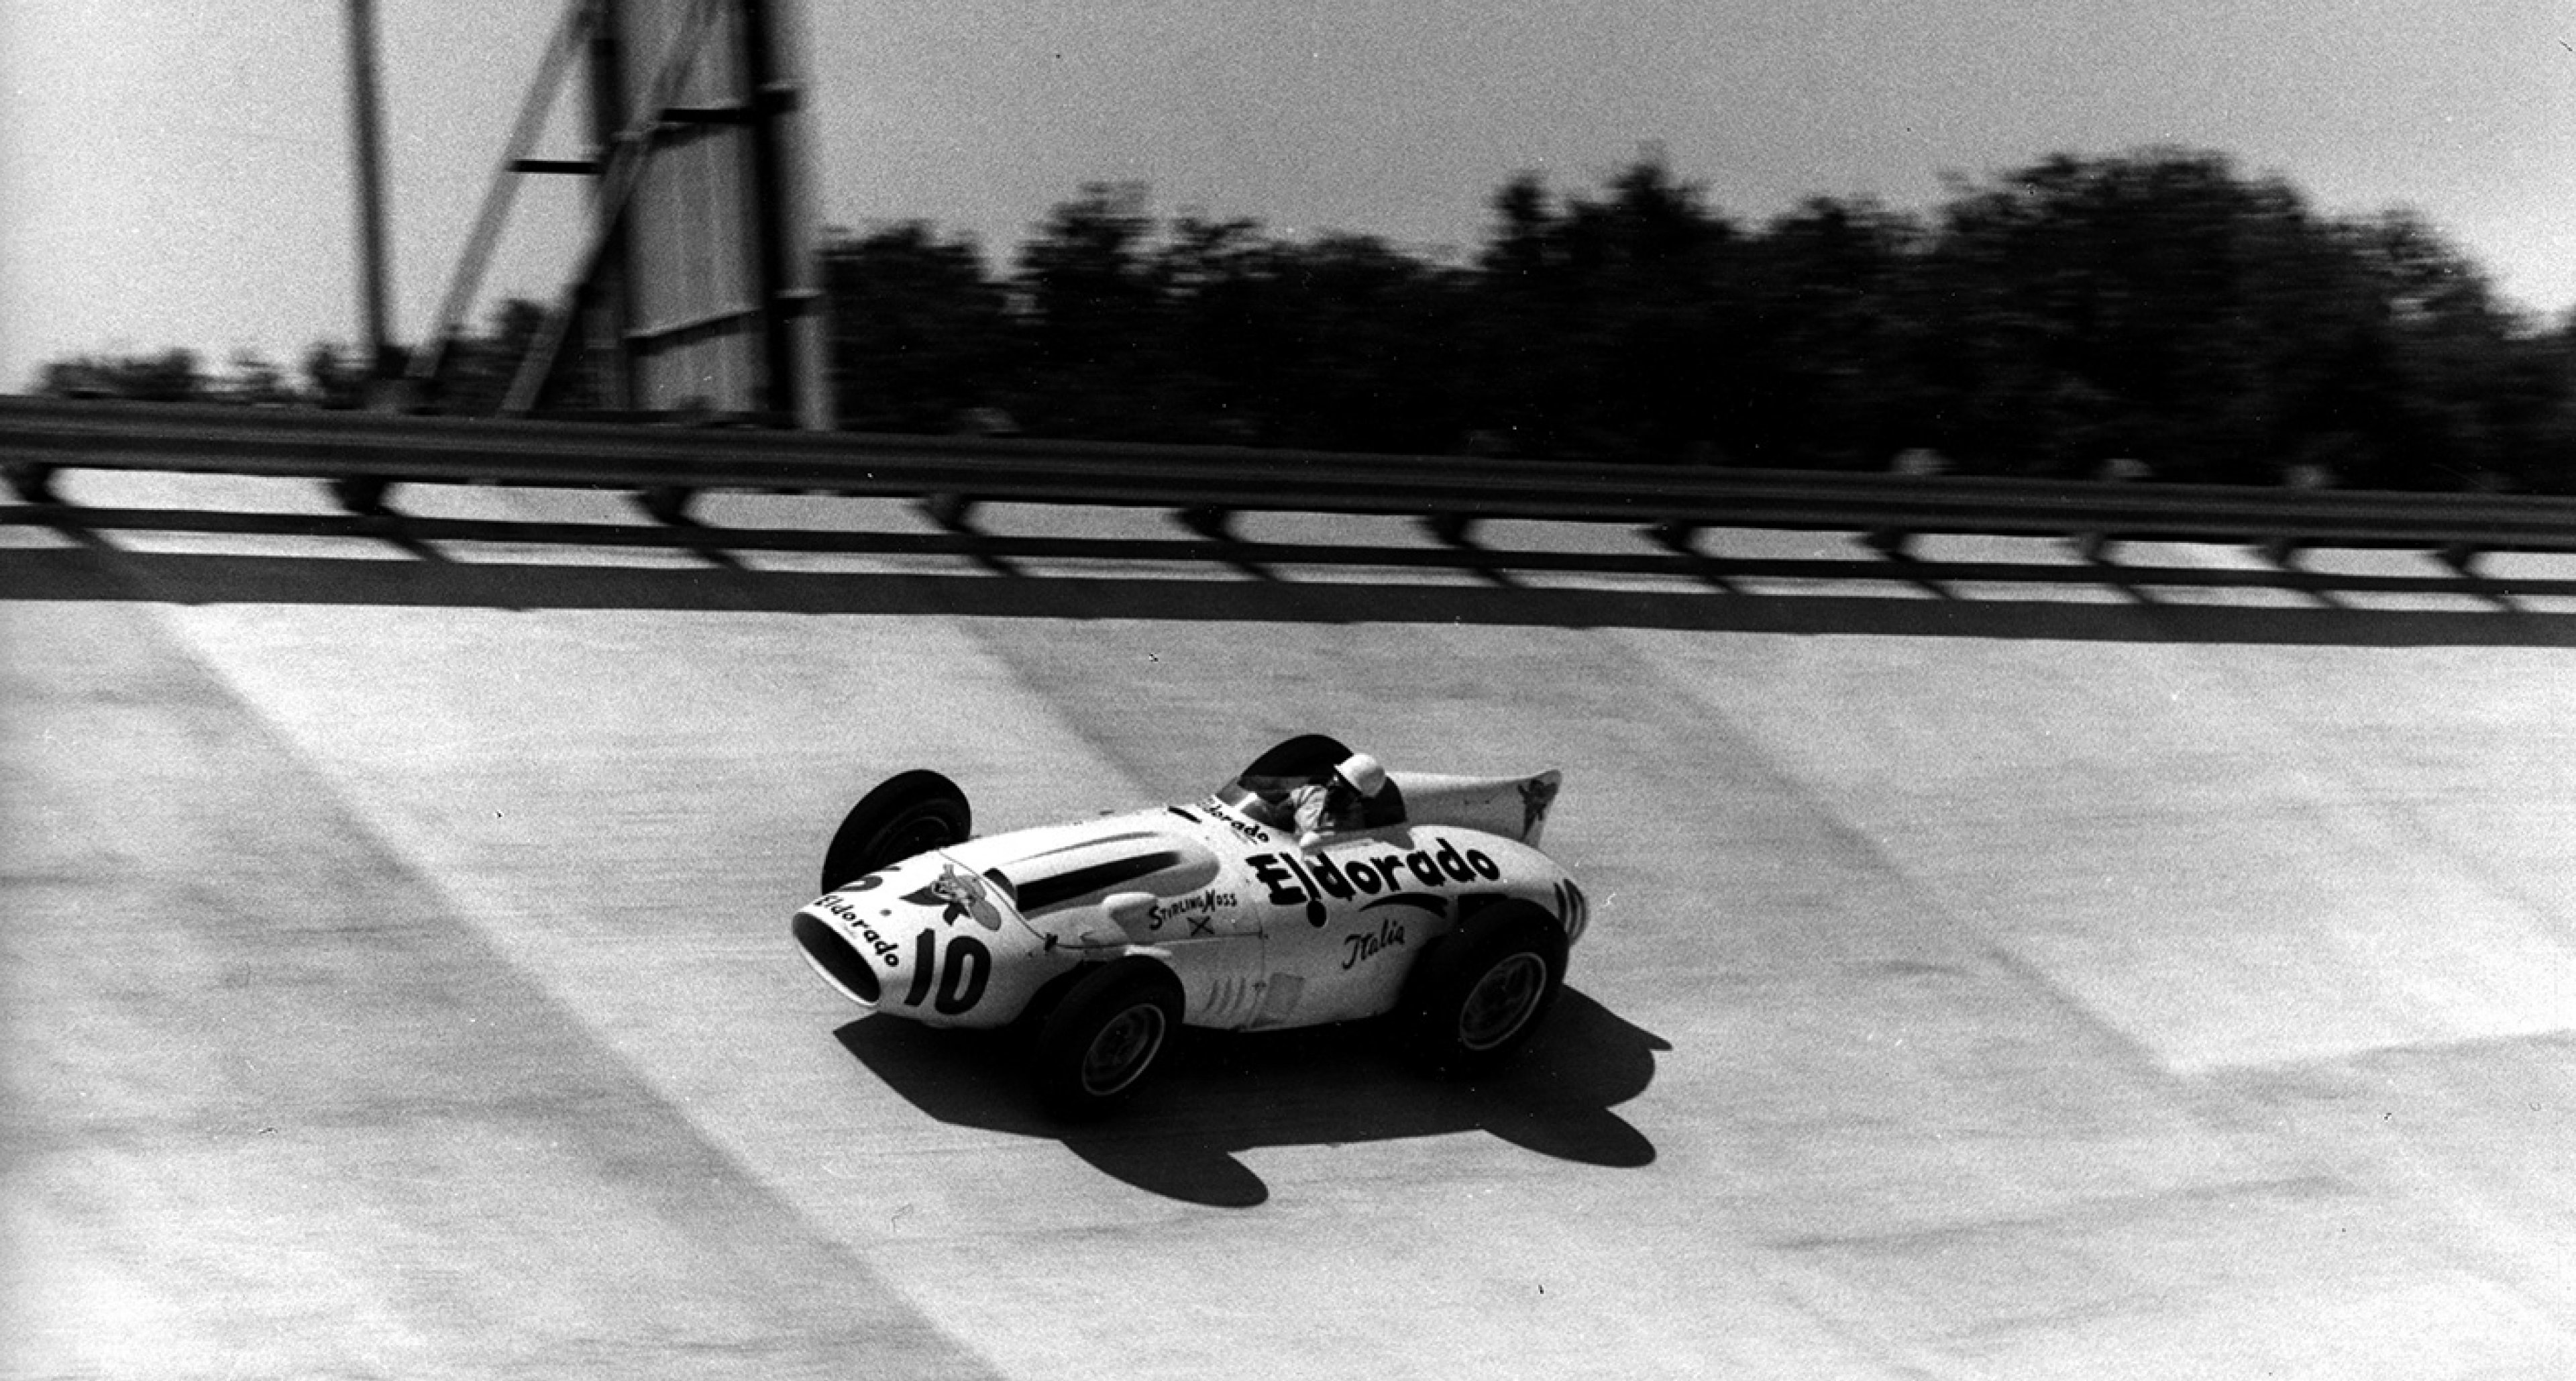 Sir Stirling Moss' Tipo 420/M/58 'Eldorado' at the 500 Miles of Monza in 1958